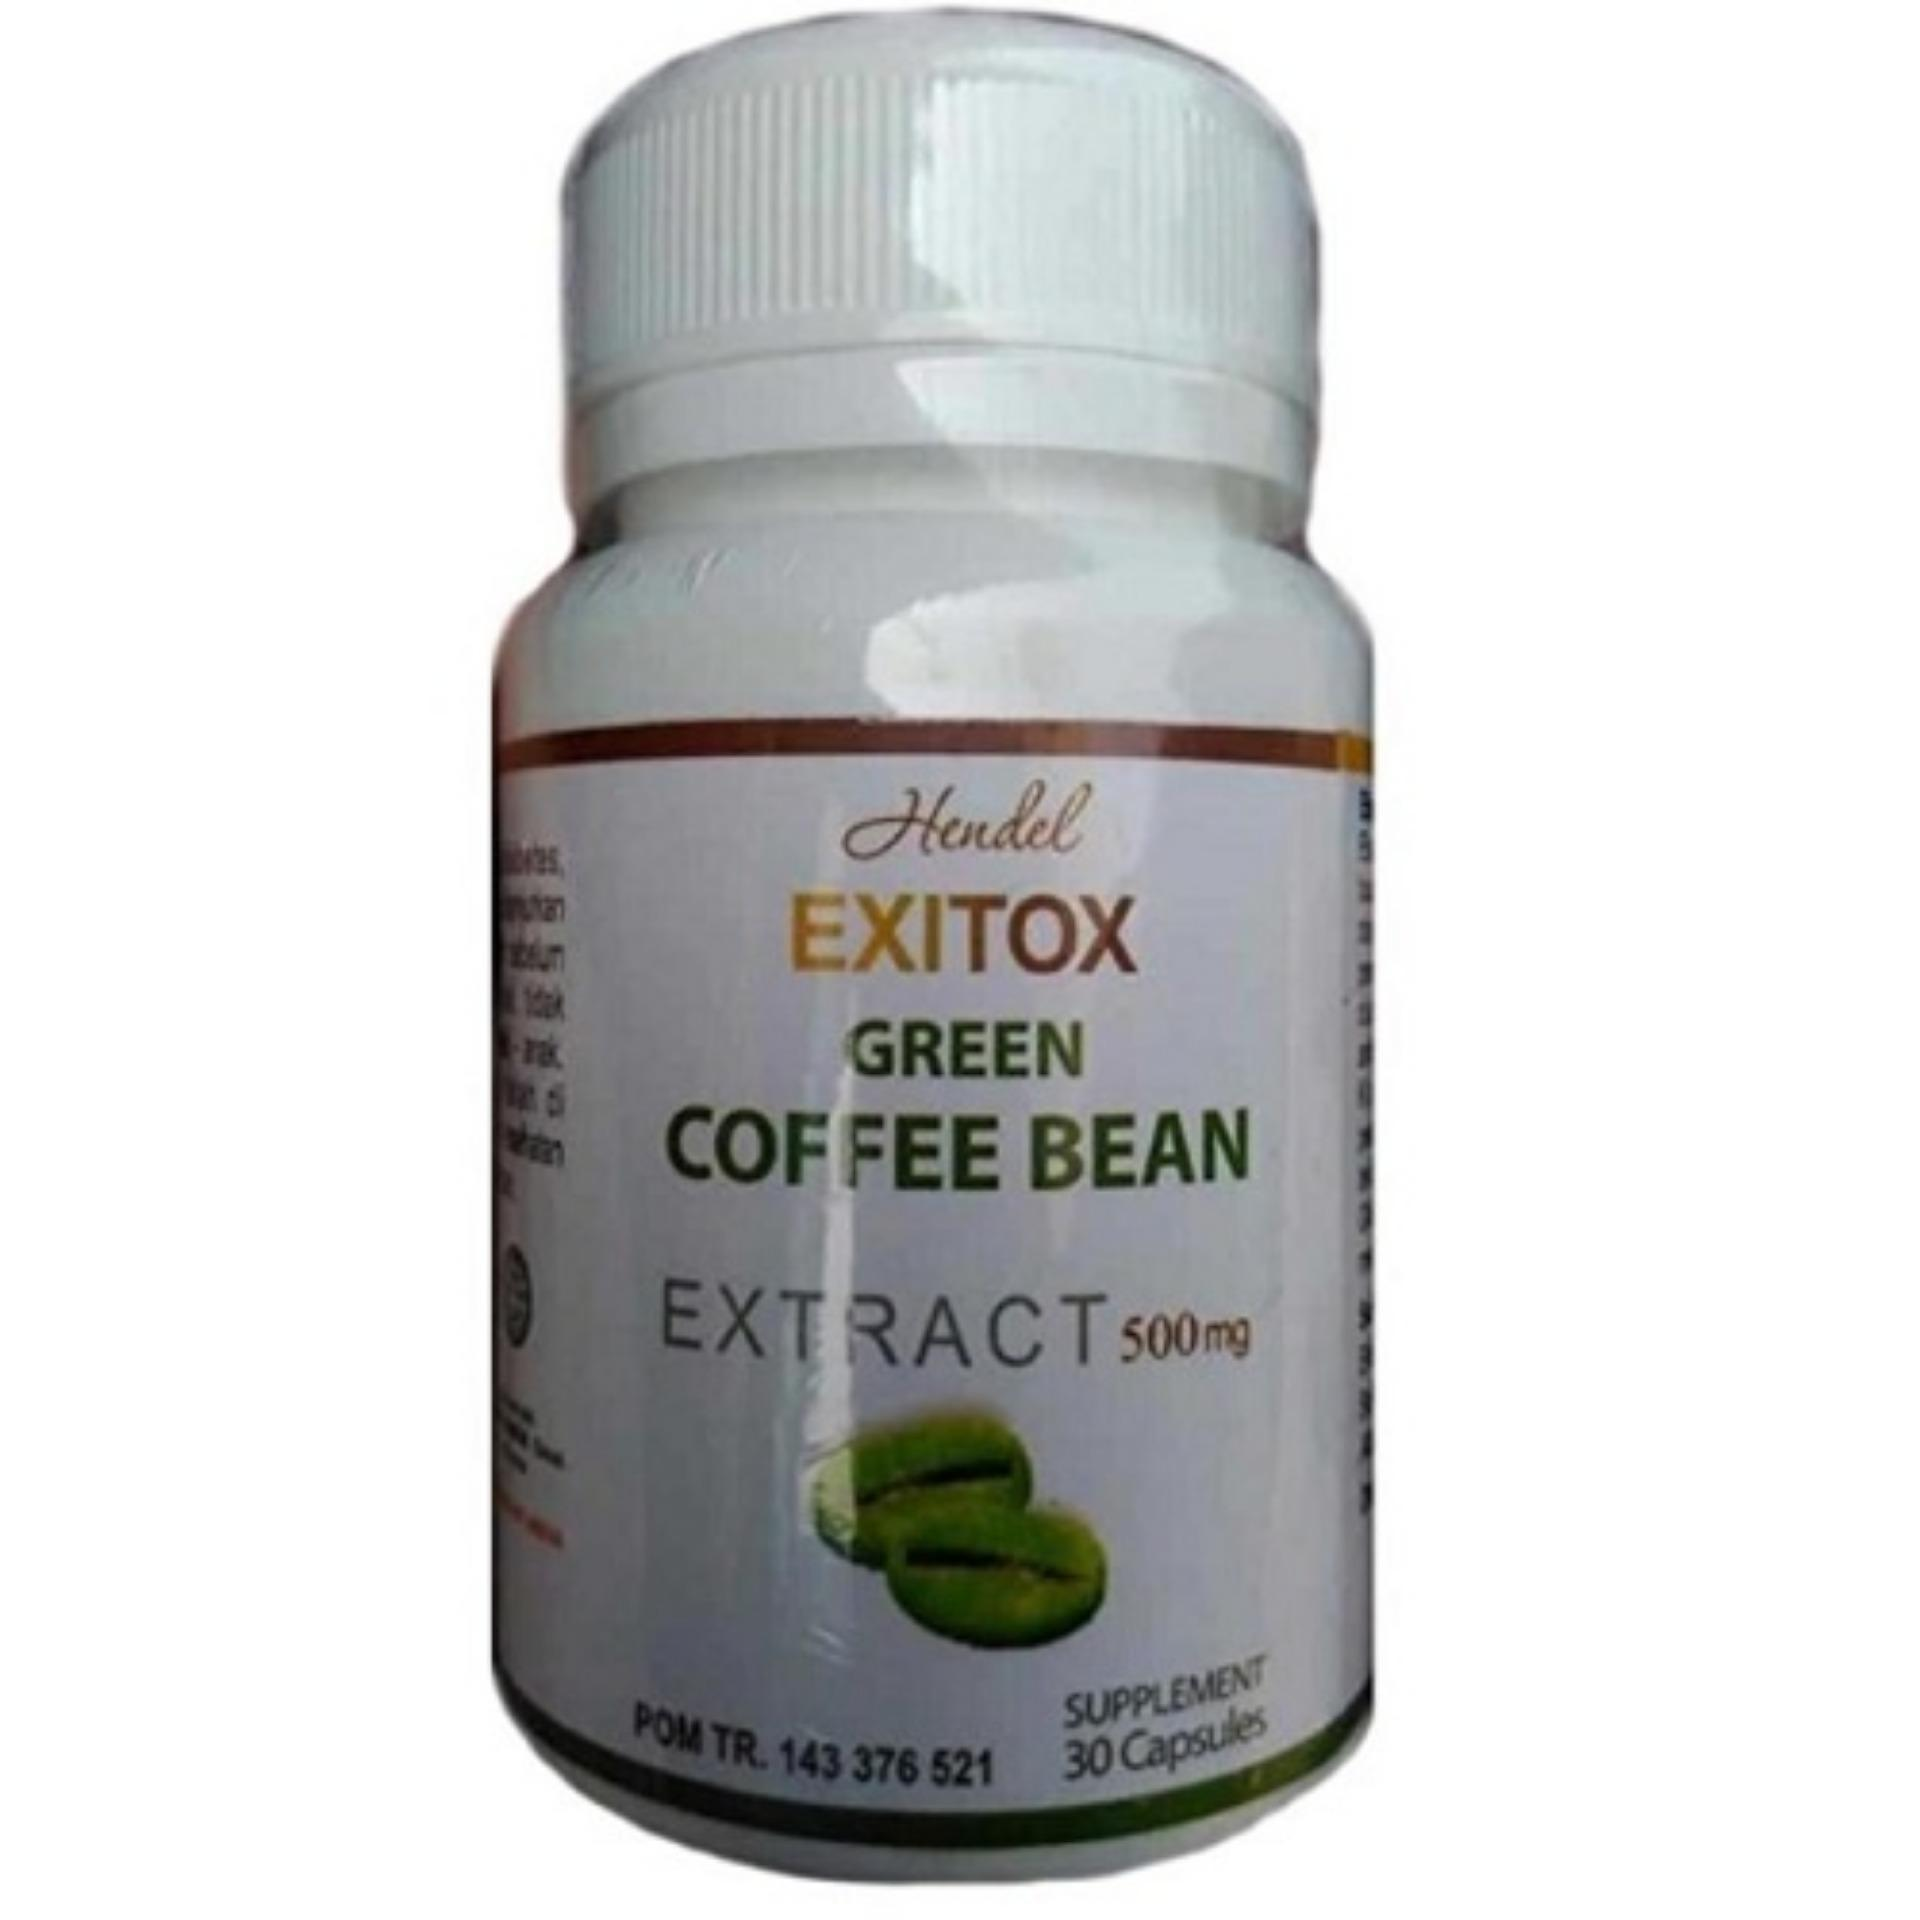 Flash Sale Green Coffee Bean Hendel Exitox - 30 kapsul Detox Pelangsing Detoks | Leptin Green Coffee | Murah Agen Grosir